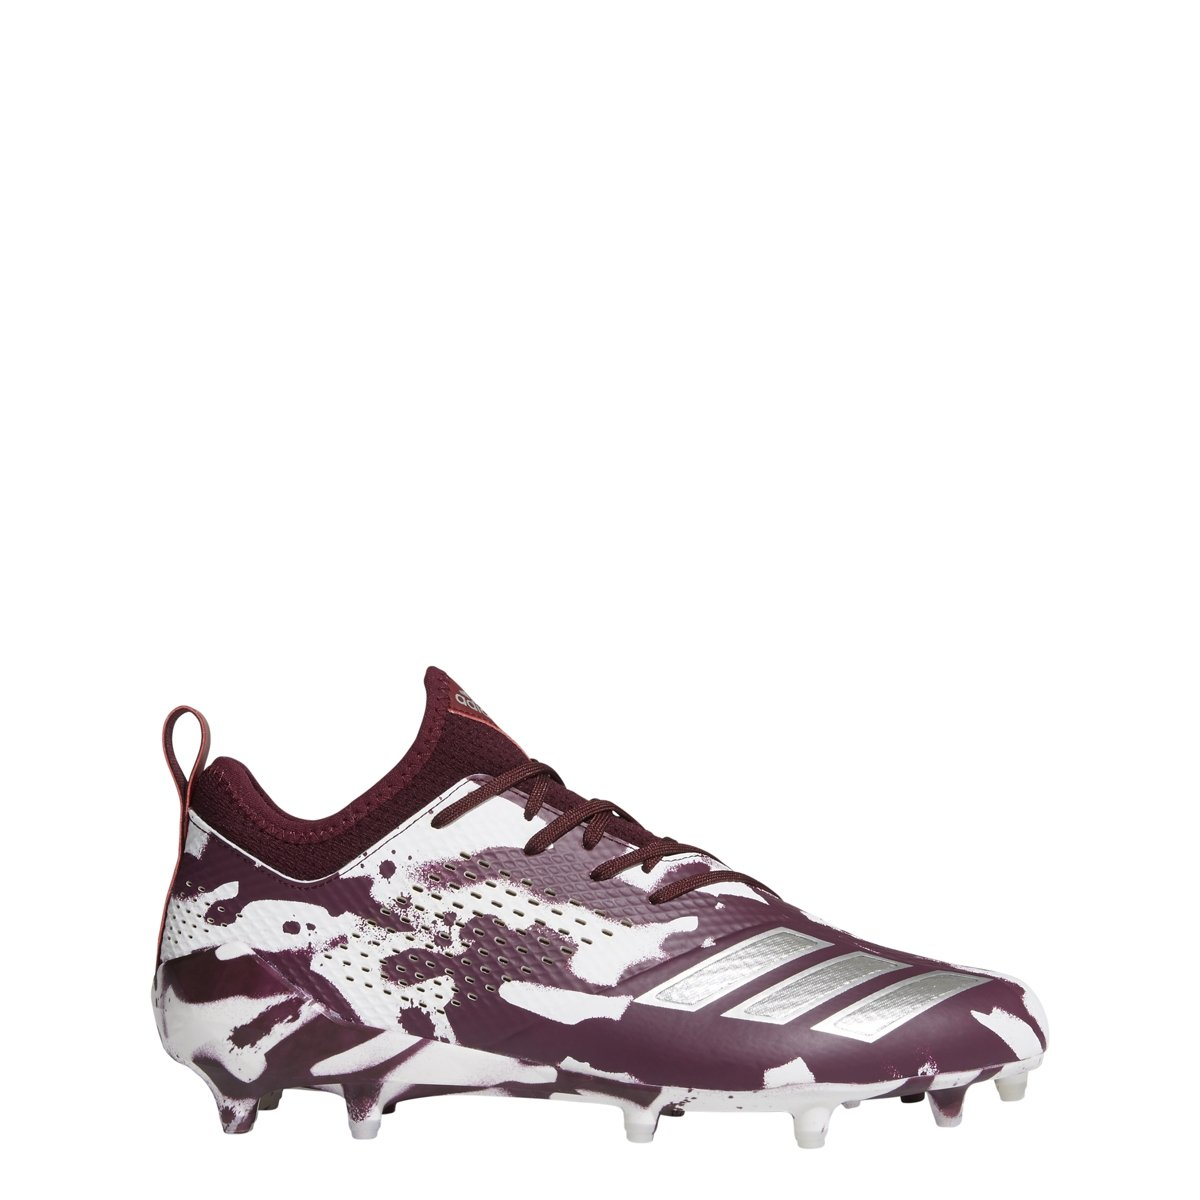 adidas Men's Adizero 5-Star 7.0 Football Shoe B078LC9Z89 7 D(M) US|Maroon-silver Metallic-white